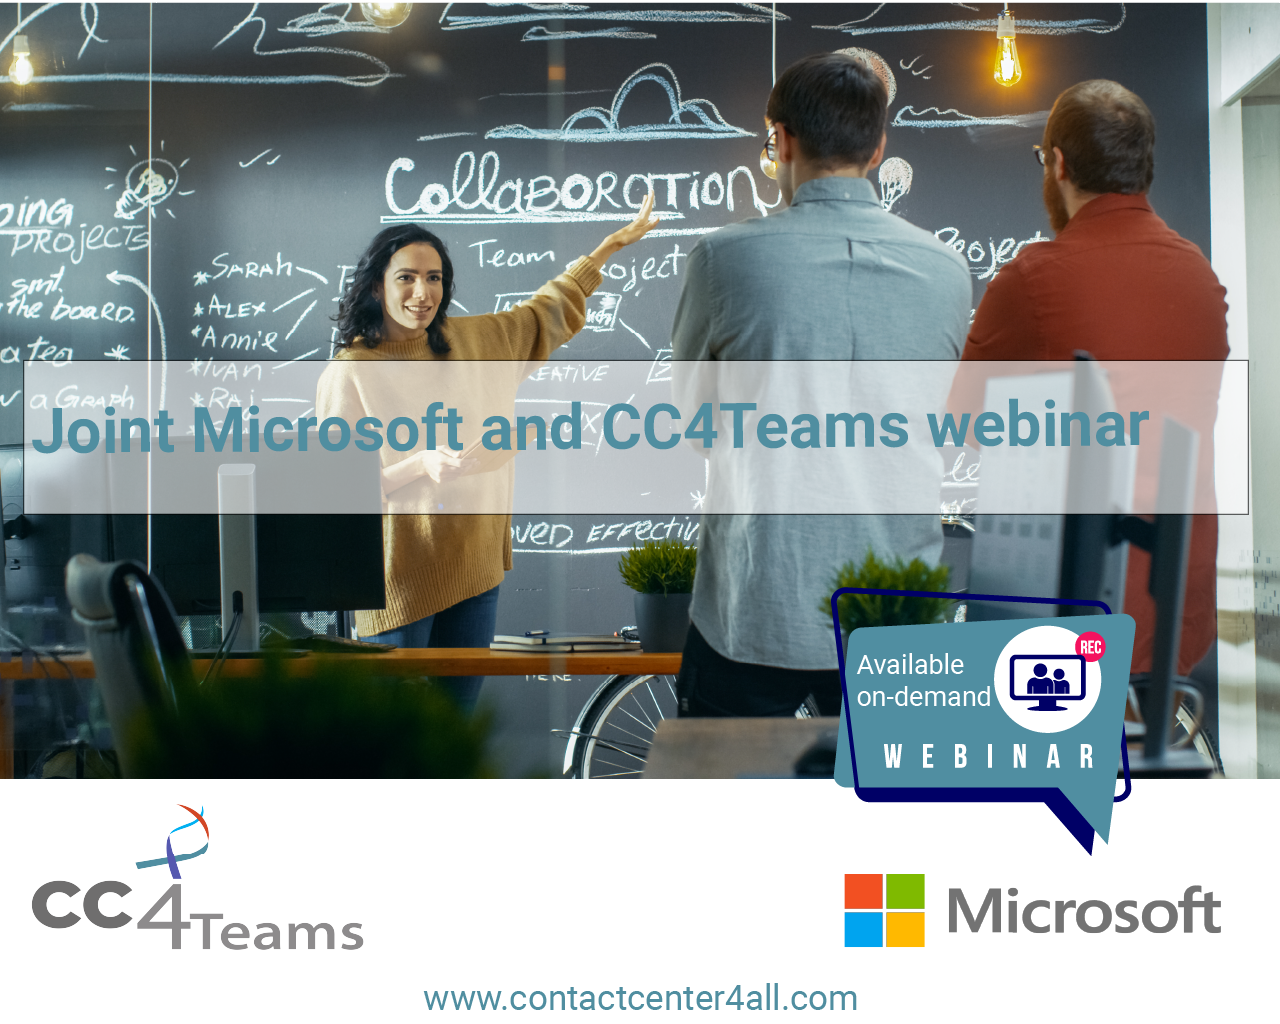 Joint webinar with Microsoft